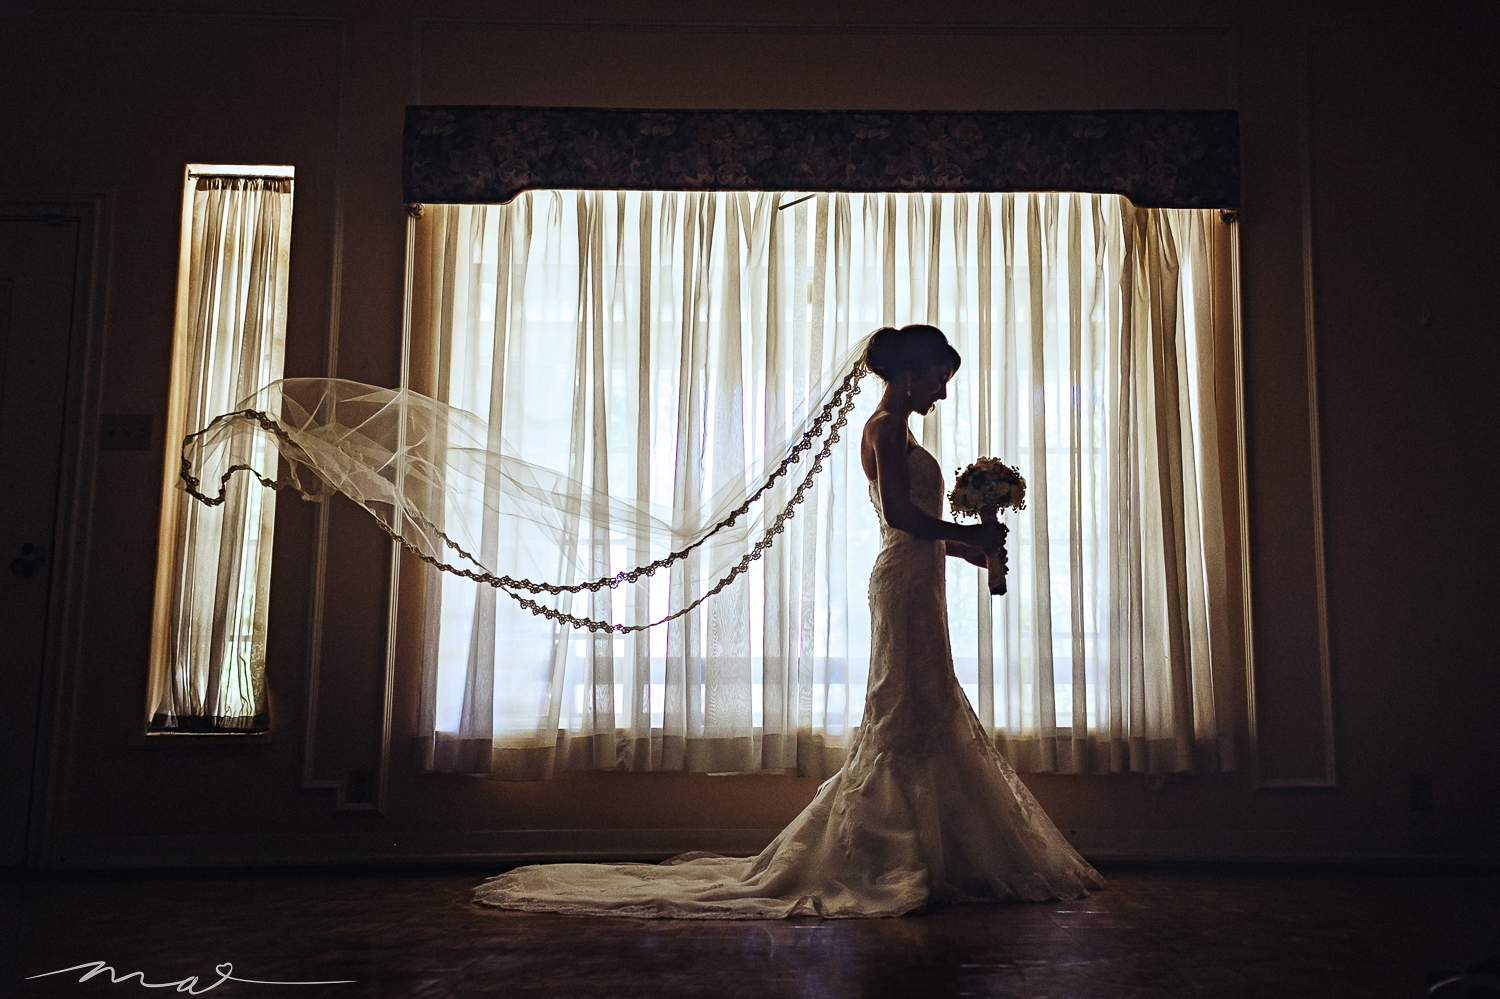 At every venue, there is always one place that is easy to look past, where the light will allow for amazing photography. I make it a point every wedding to find it. This room in the halls at Orcutt Ranch in Woodland Hills was no exception.